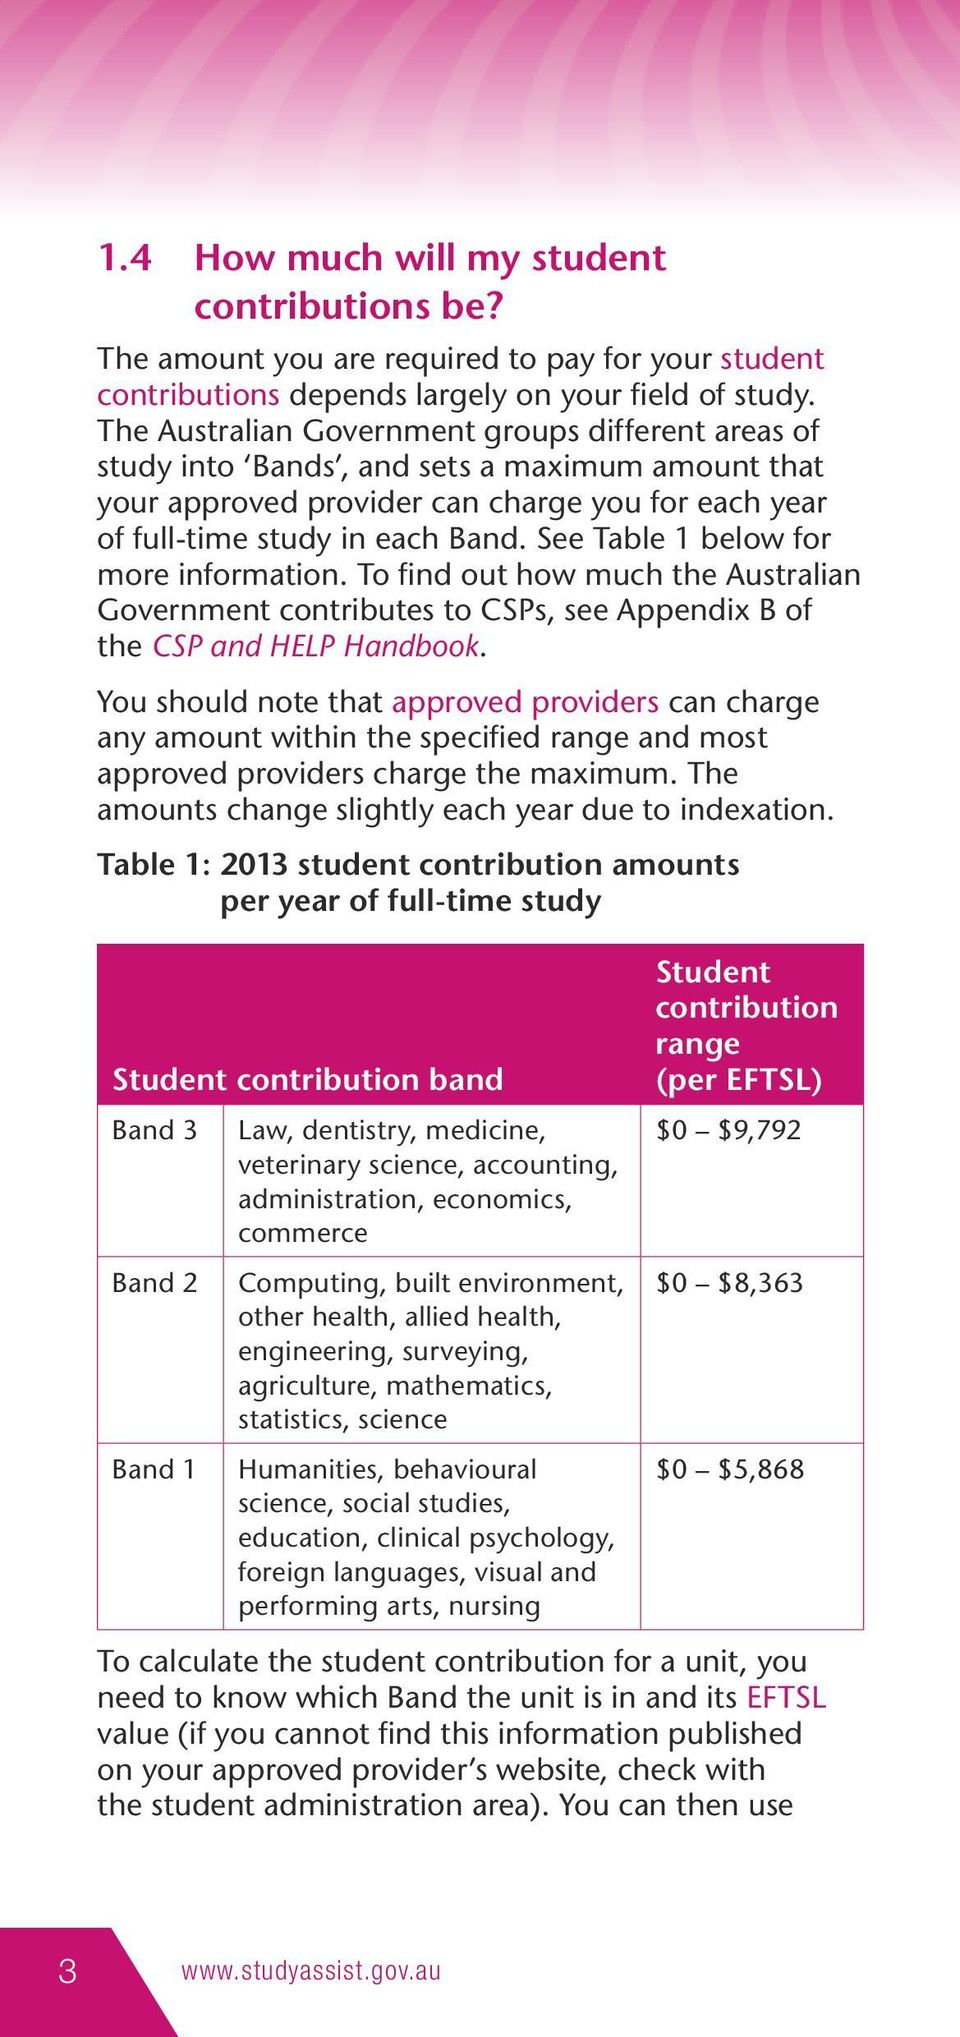 See Table 1 below for more information. To find out how much the Australian Government contributes to CSPs, see Appendix B of the CSP and HELP Handbook.